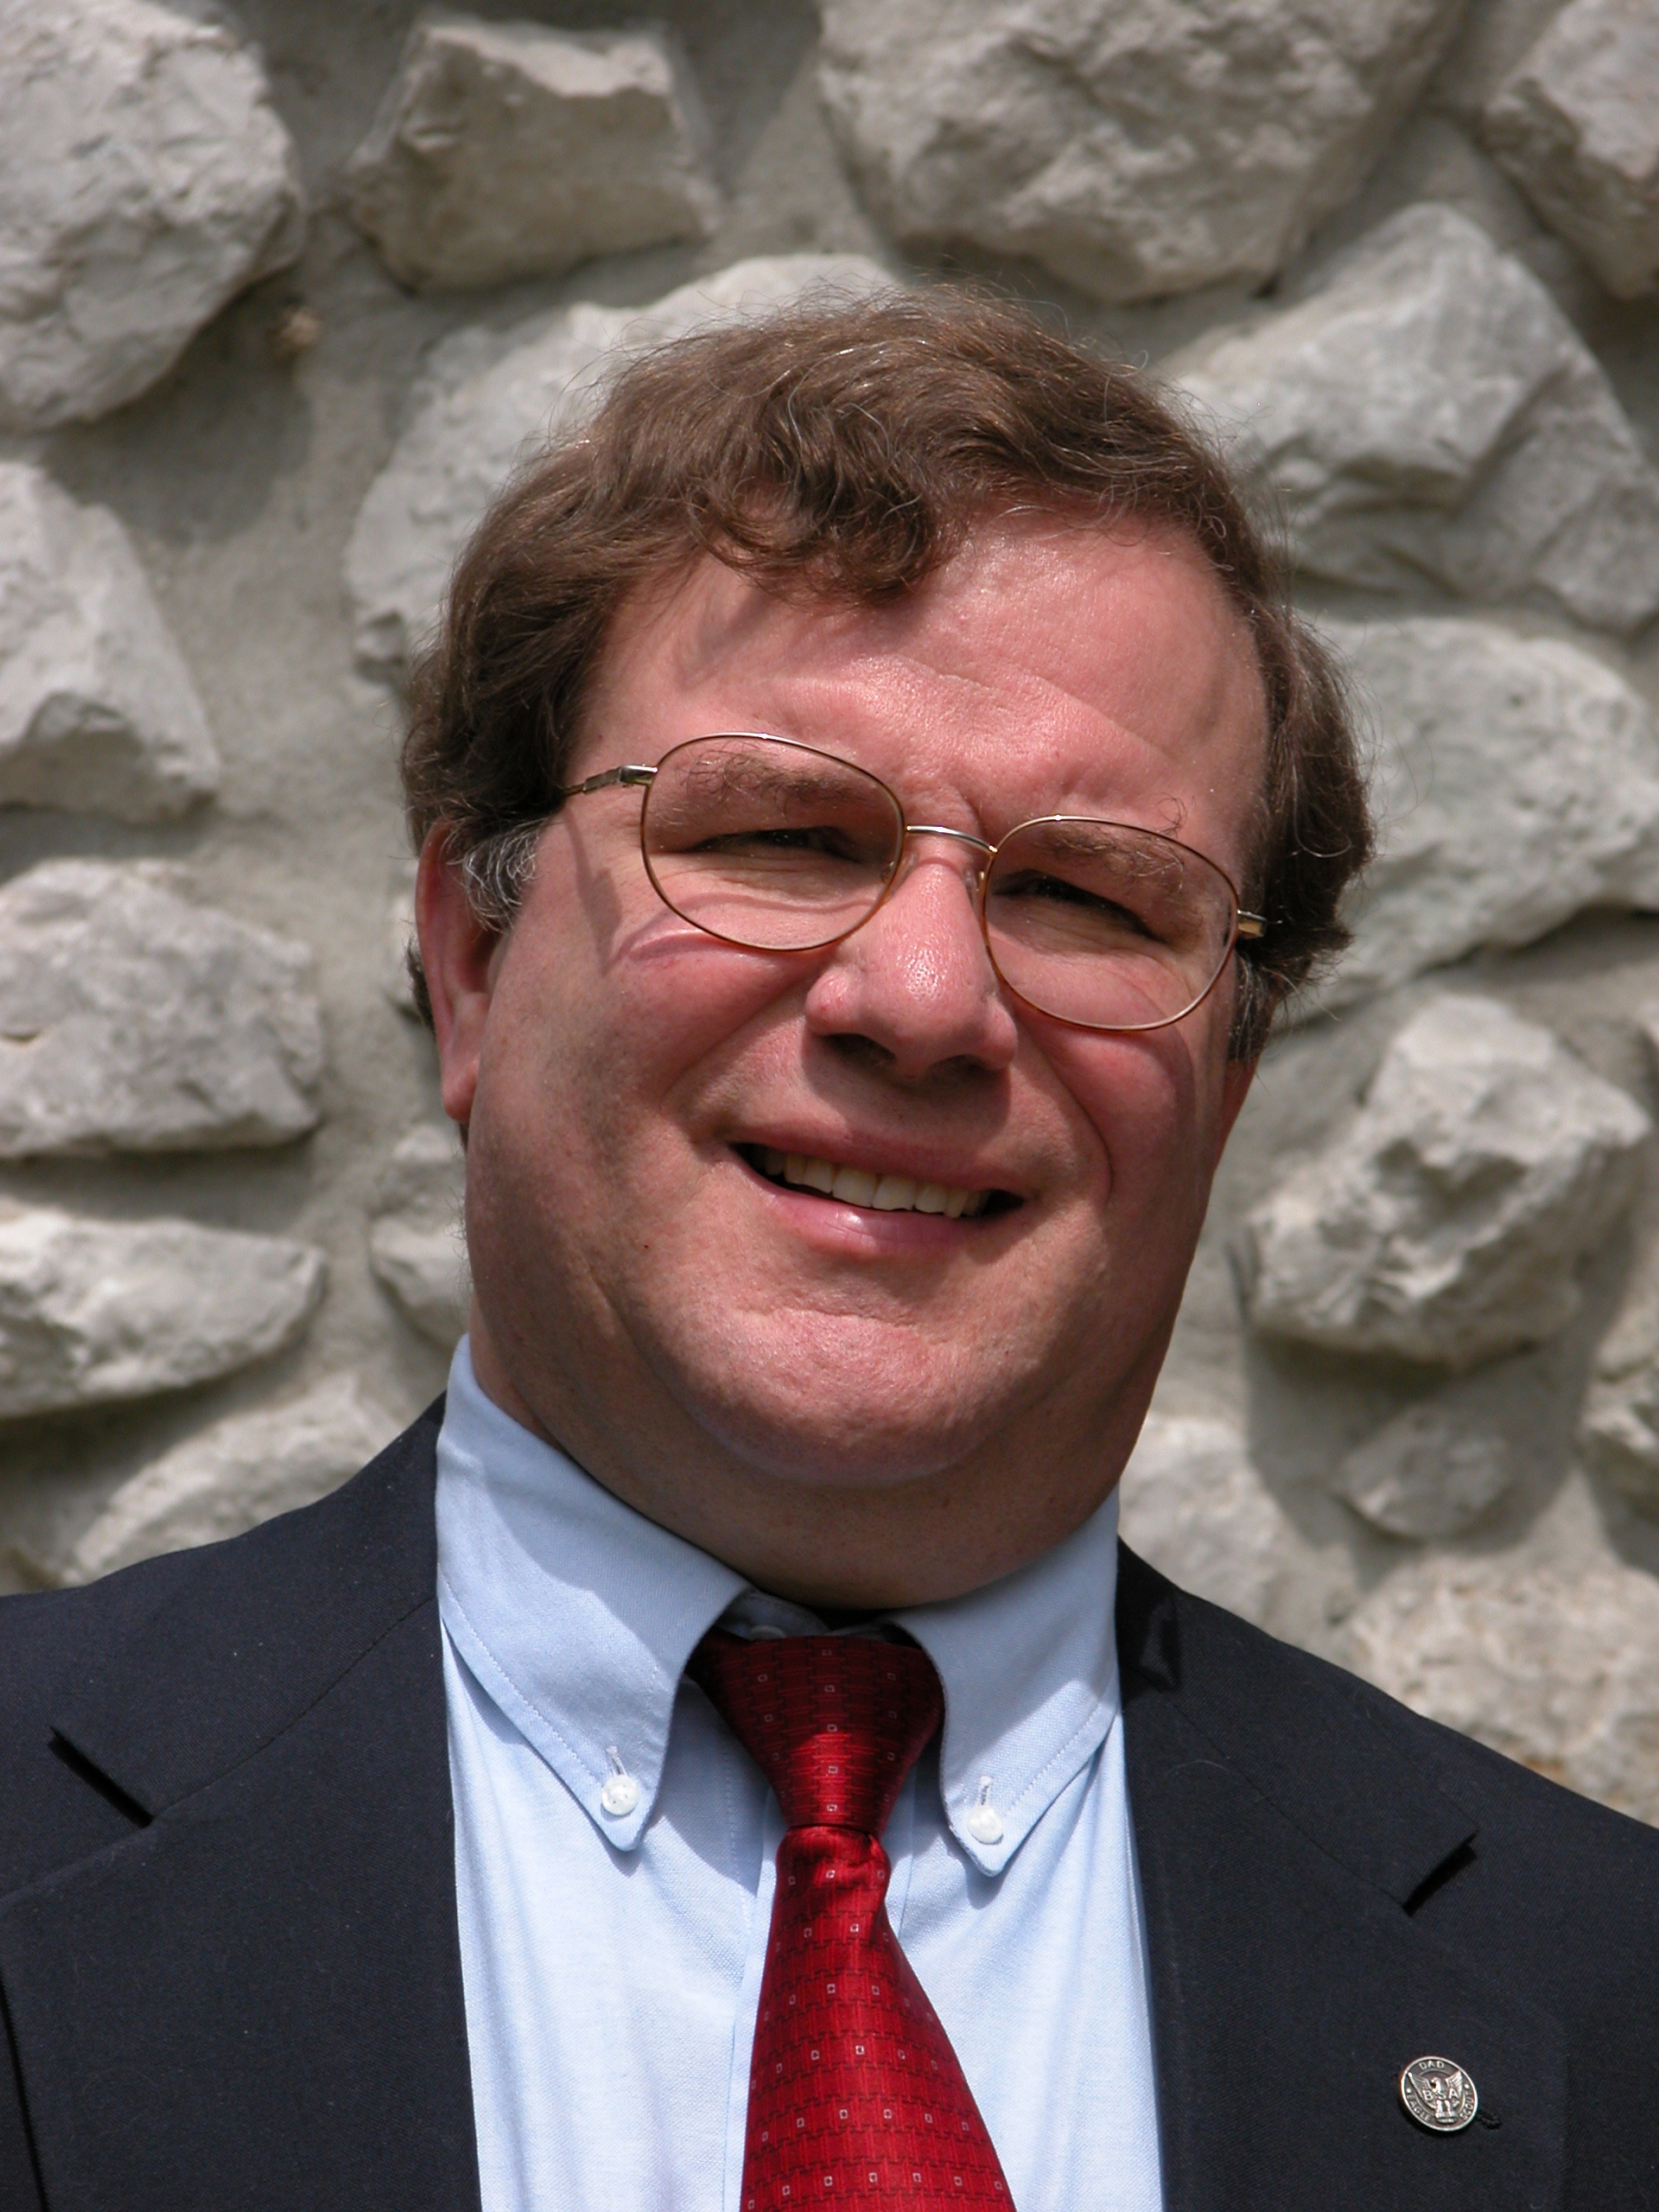 Gregg Young